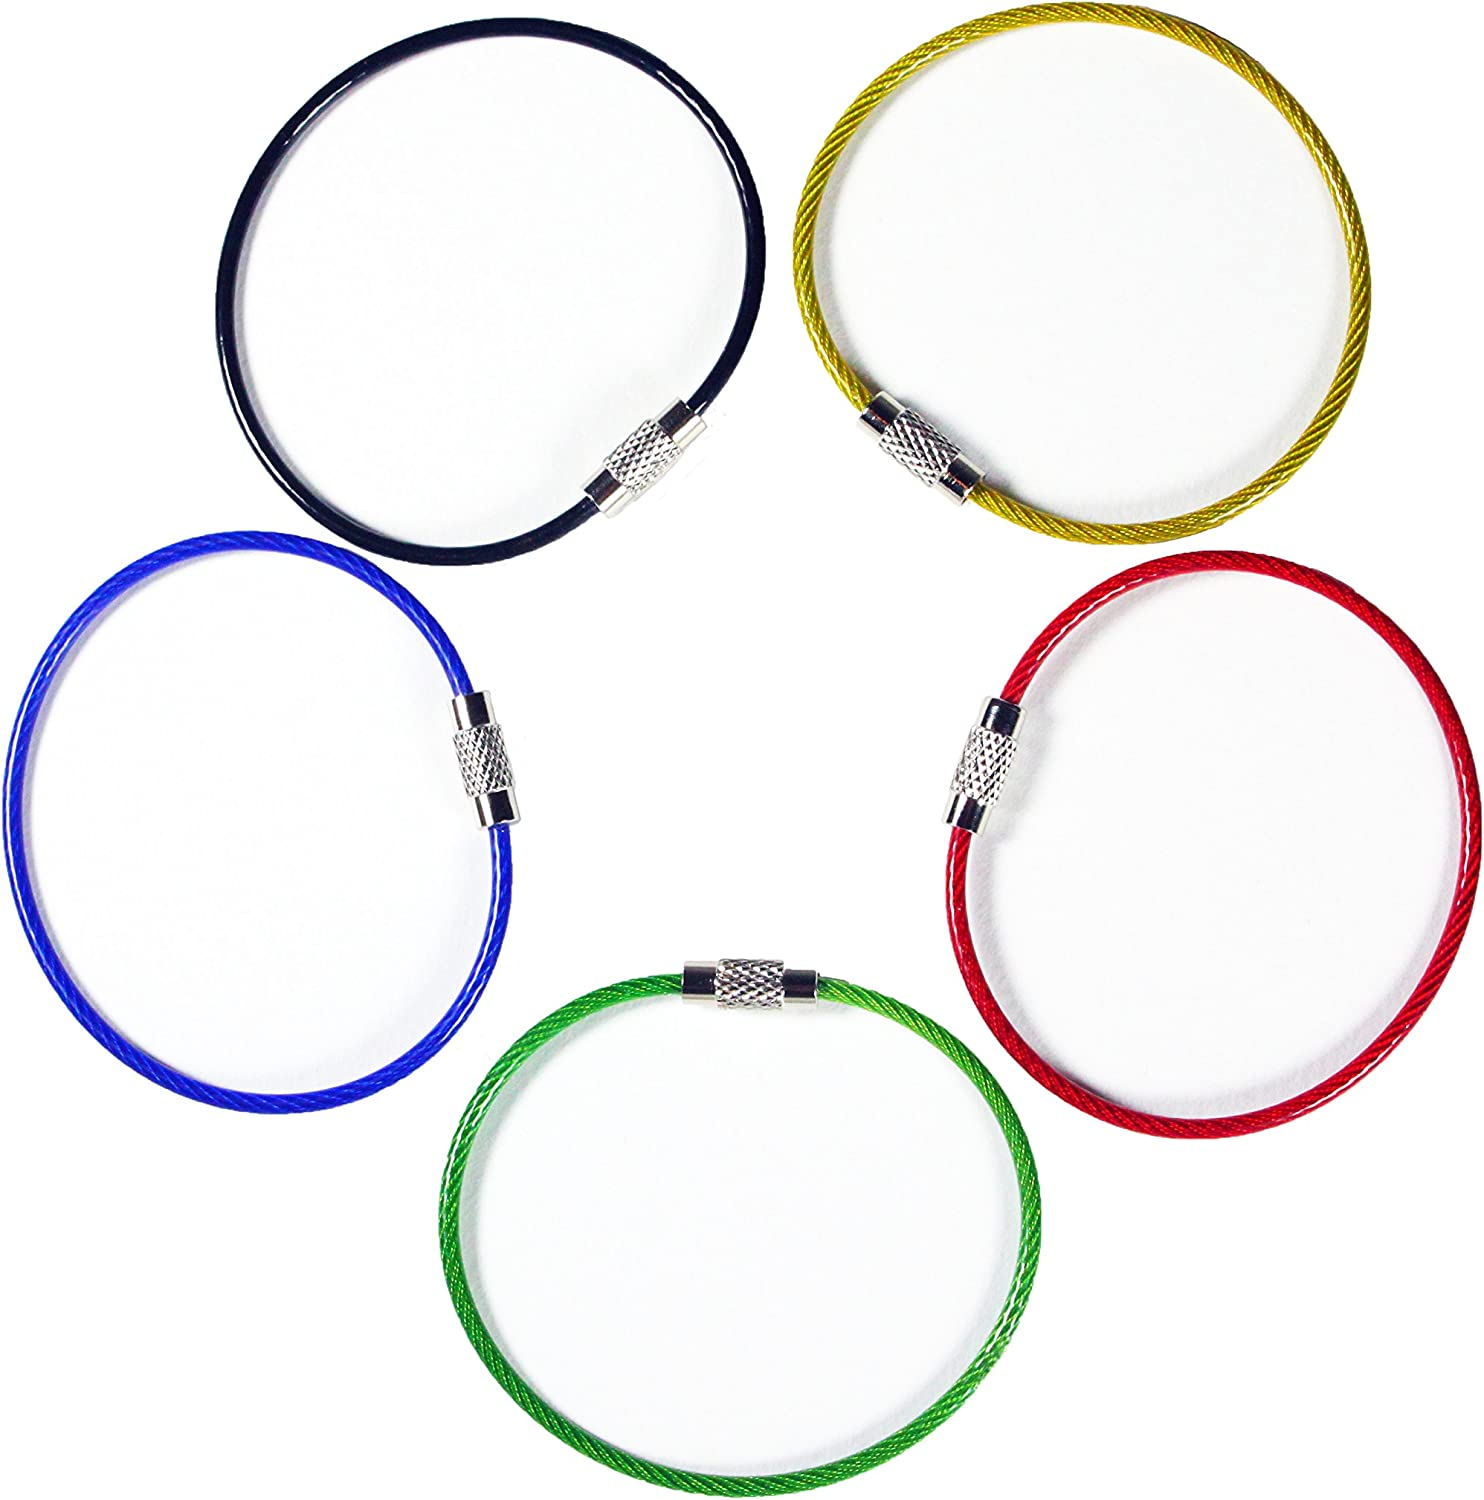 20pack Colored Nylon Coated Stainless Steel Wire Keychains 2mm 6.3 Inches Aircraft Cable Key Ring Loops for Hanging Luggage Tags or ID Tags (Assorted 20 Pack) at  Men's Clothing store